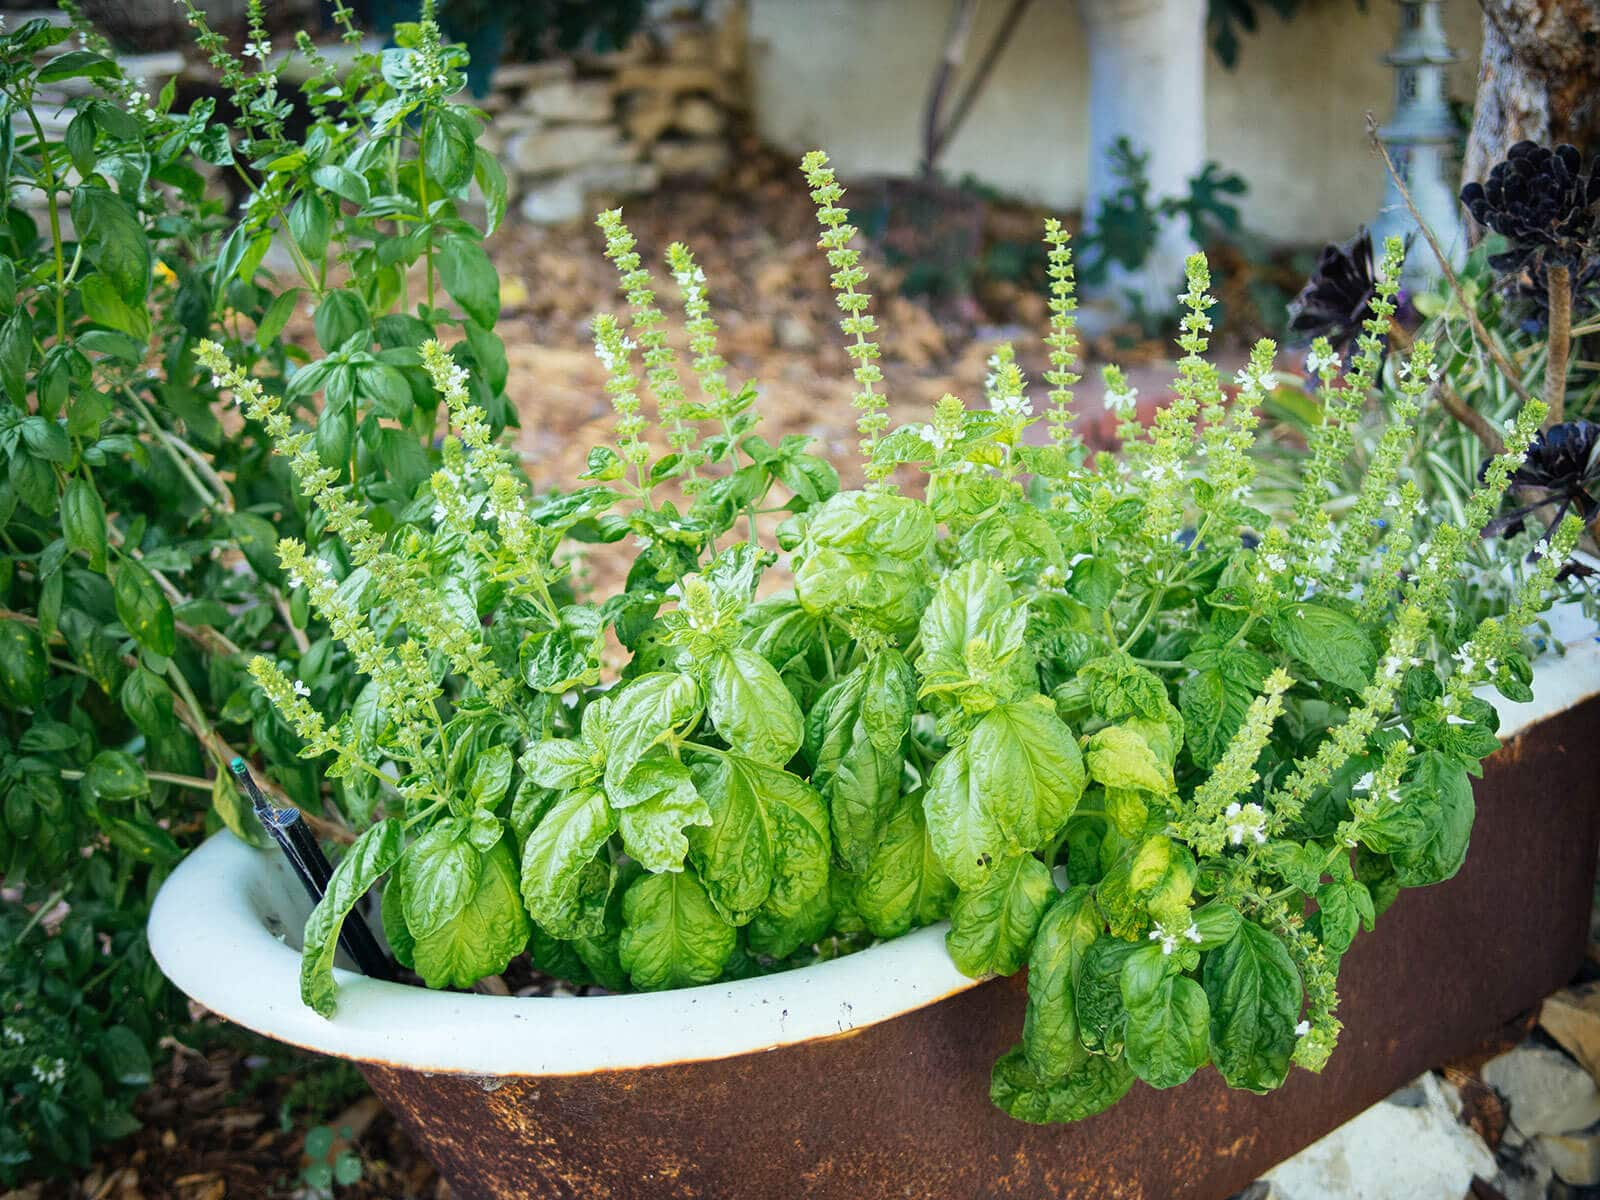 Lettuce Leaf basil ready to be harvested and preserved